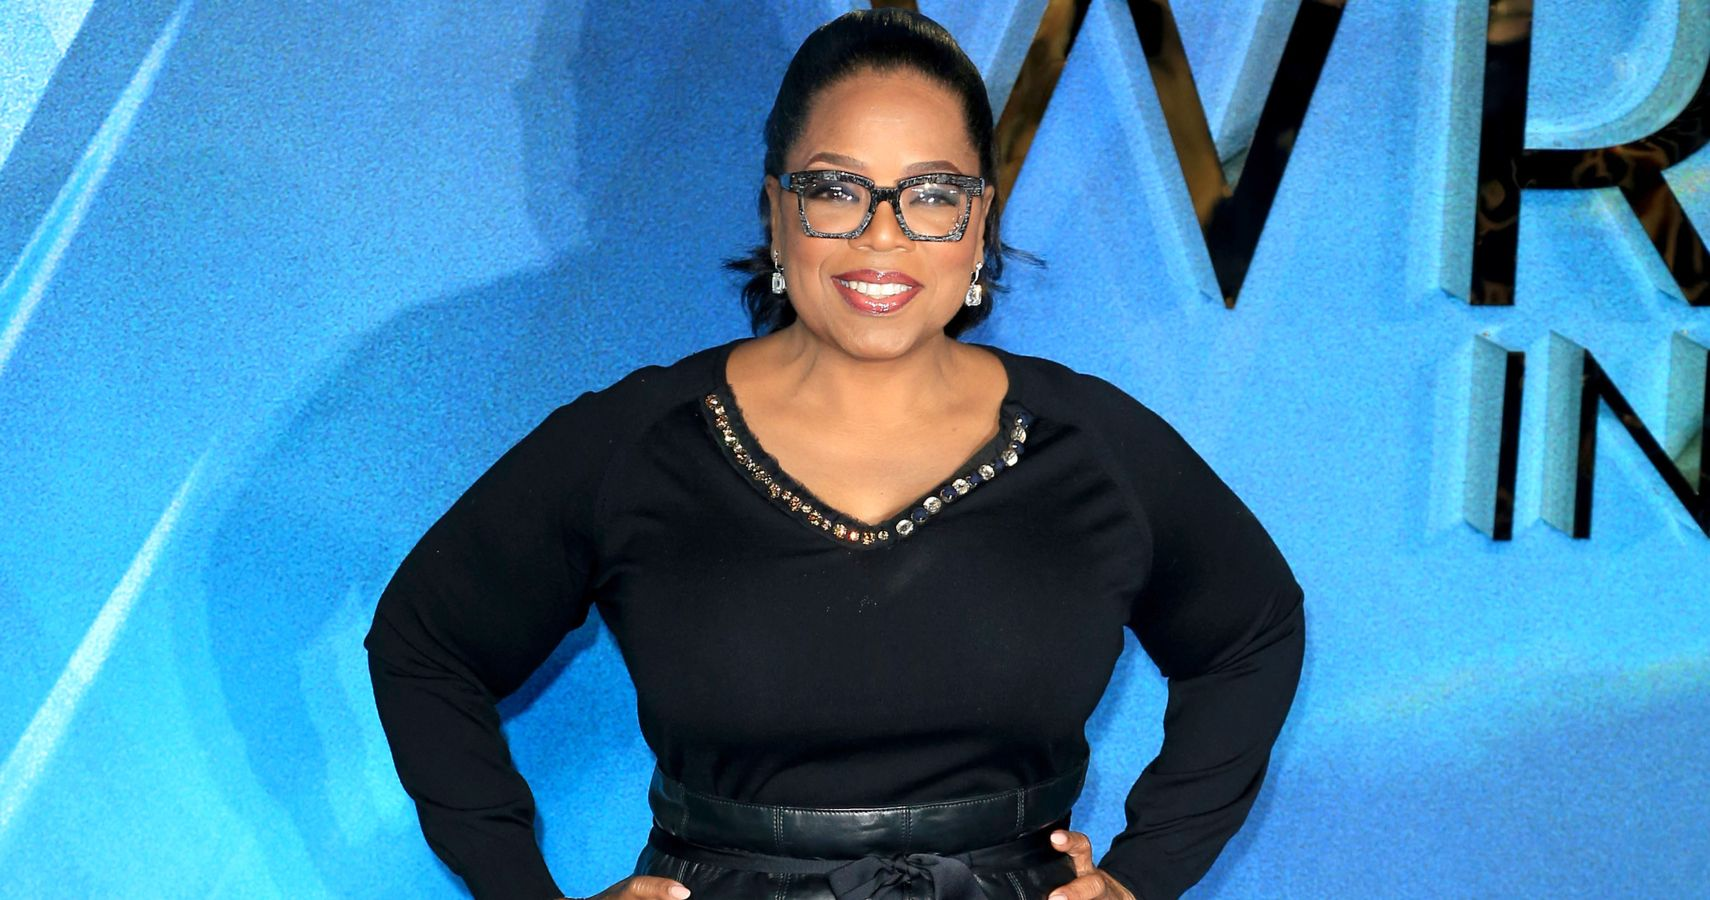 Women Of The Hour: 12 Most Powerful Women In Global Entertainment